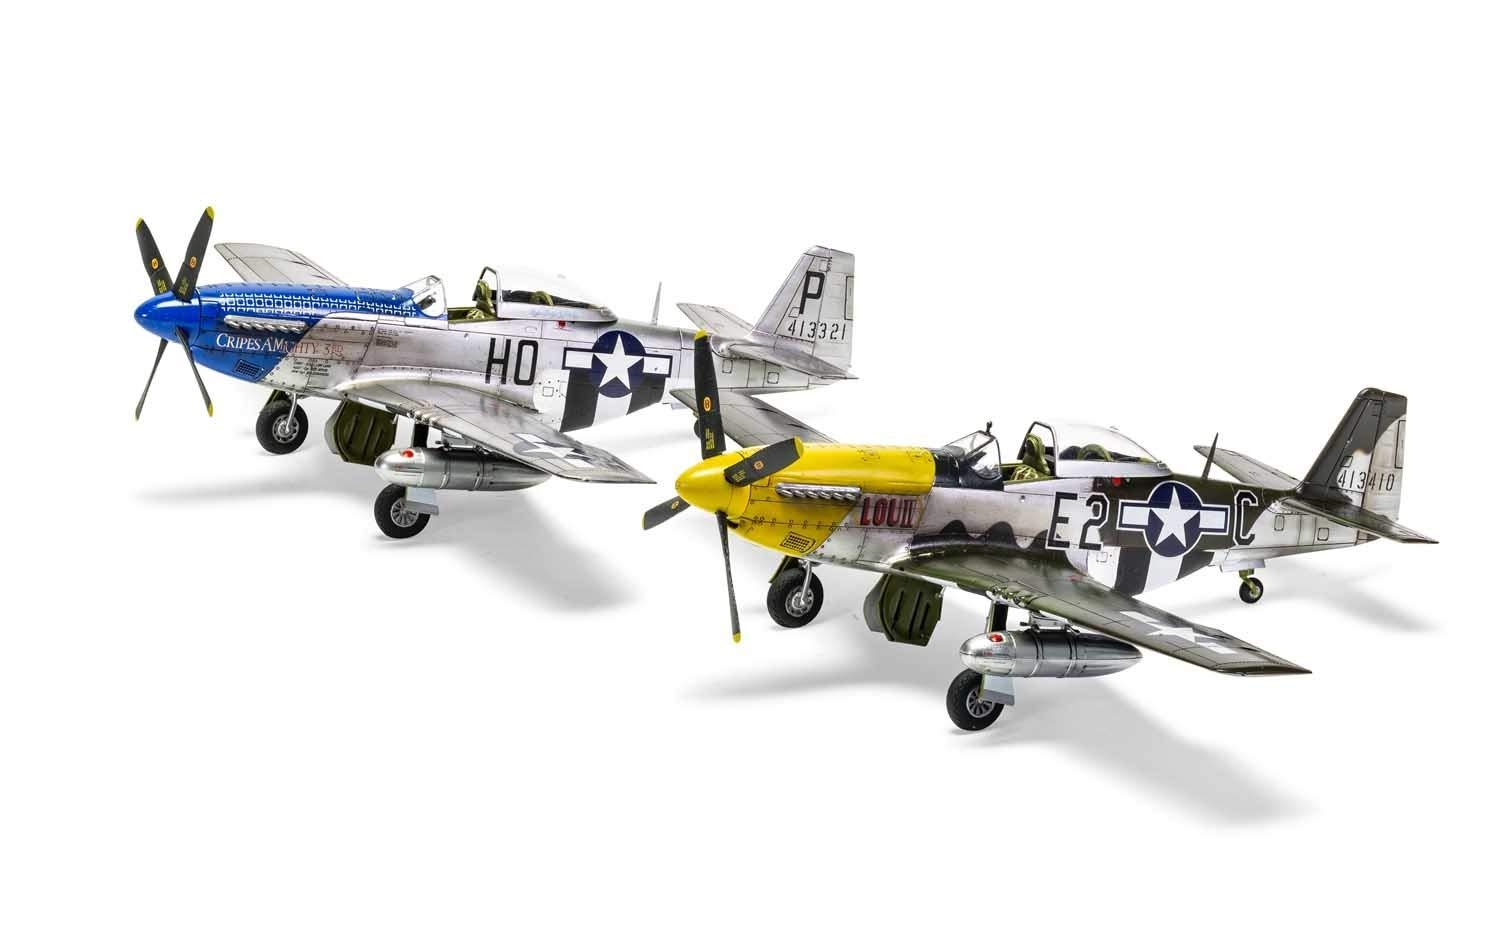 Airfix North American P51-D Mustang Filletless Tails 1:48 WWII Military Aviation Plastic Model Kit A05138